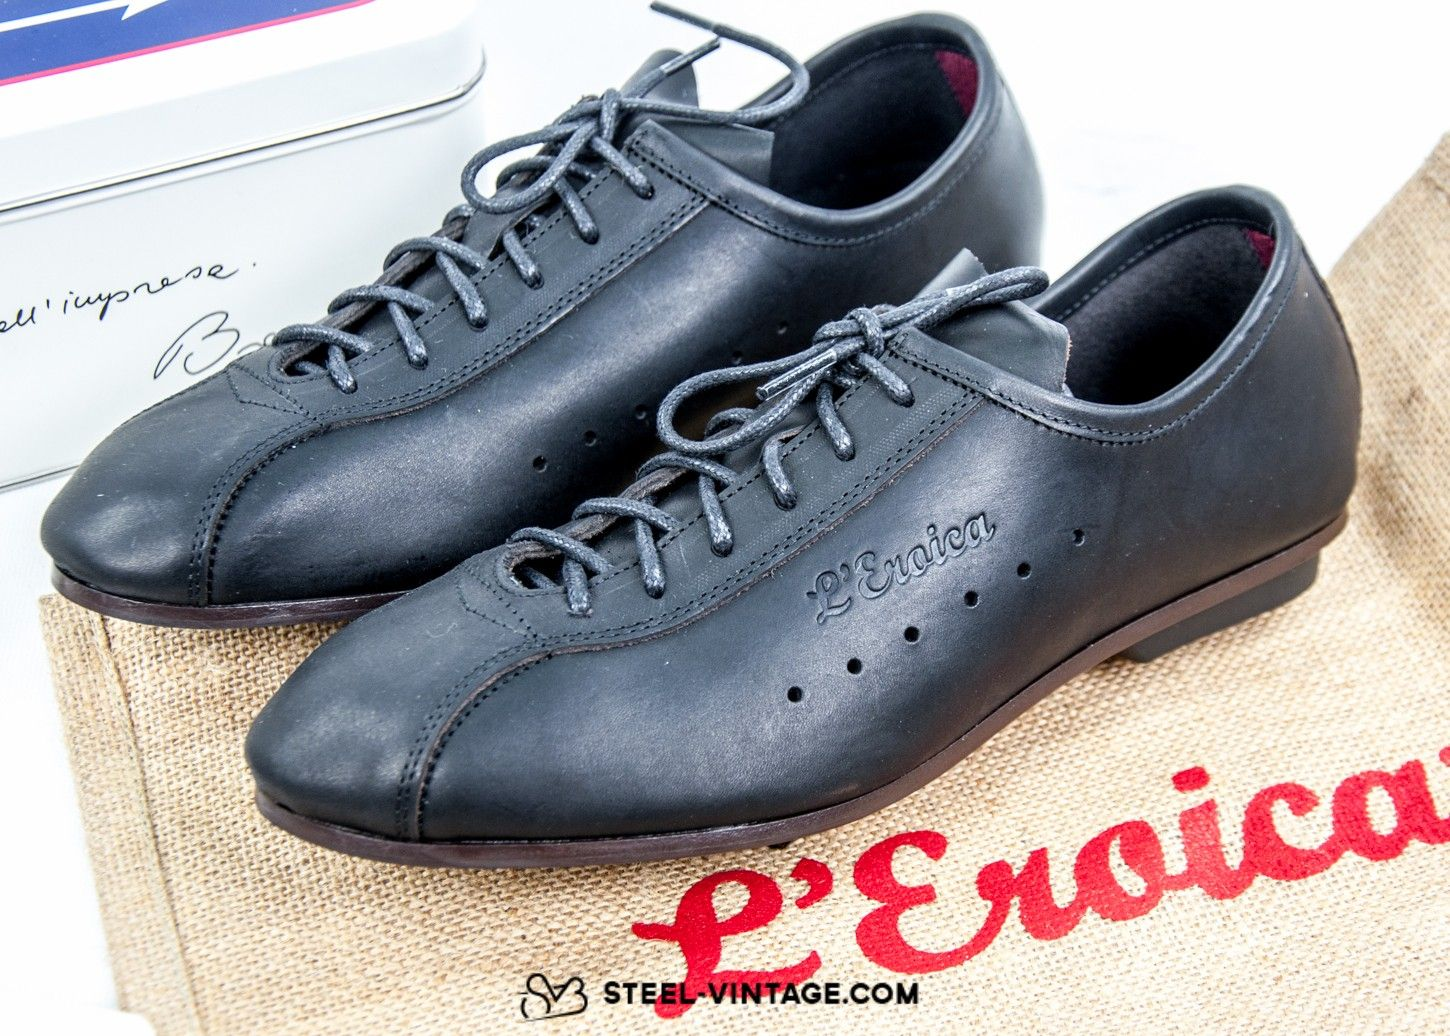 Steel Vintage Bikes L Eroica Cycling Shoes Bicycles